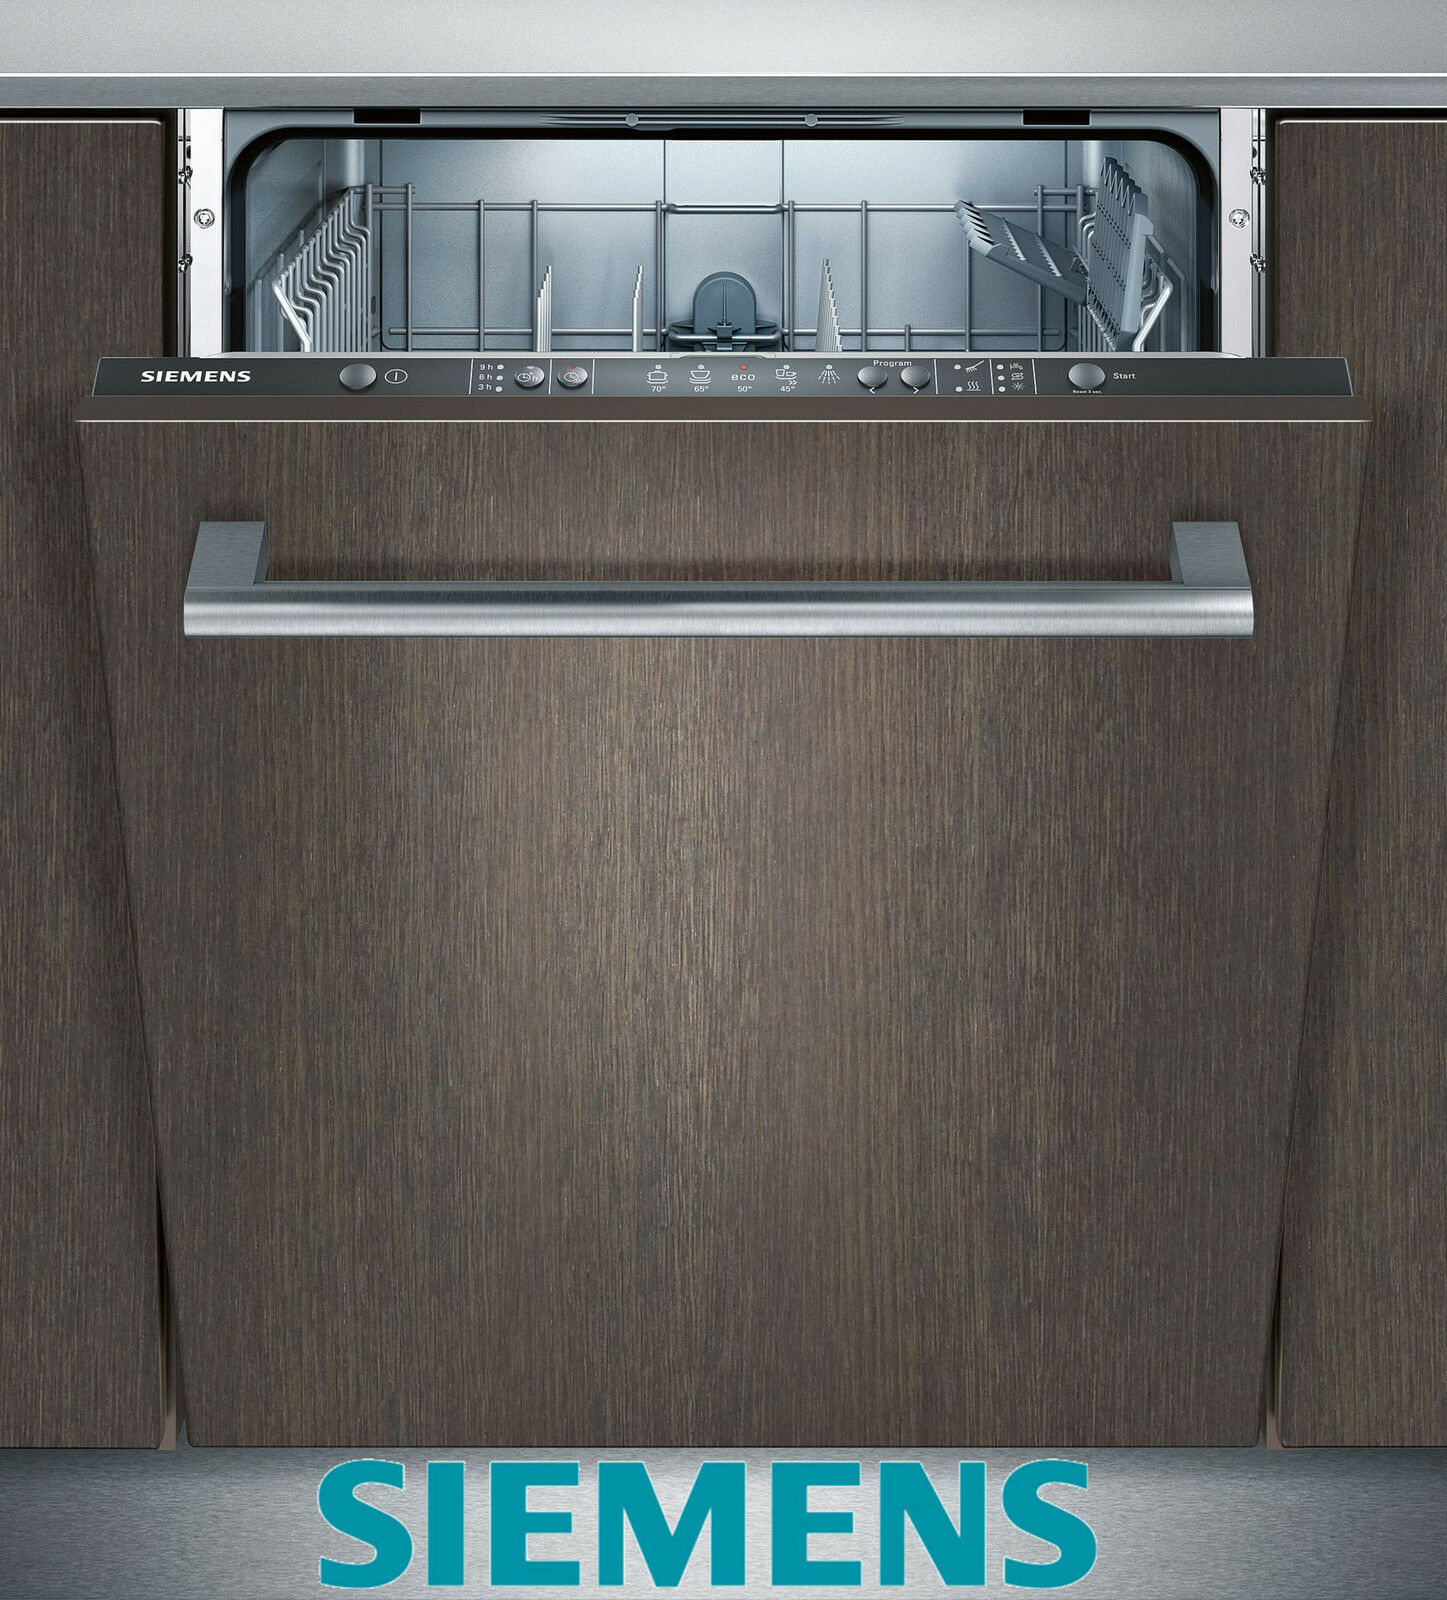 sp lmaschine 60cm siemens einbau geschirrsp ler vollintegrierbar neu a aquastop eur 425 00. Black Bedroom Furniture Sets. Home Design Ideas